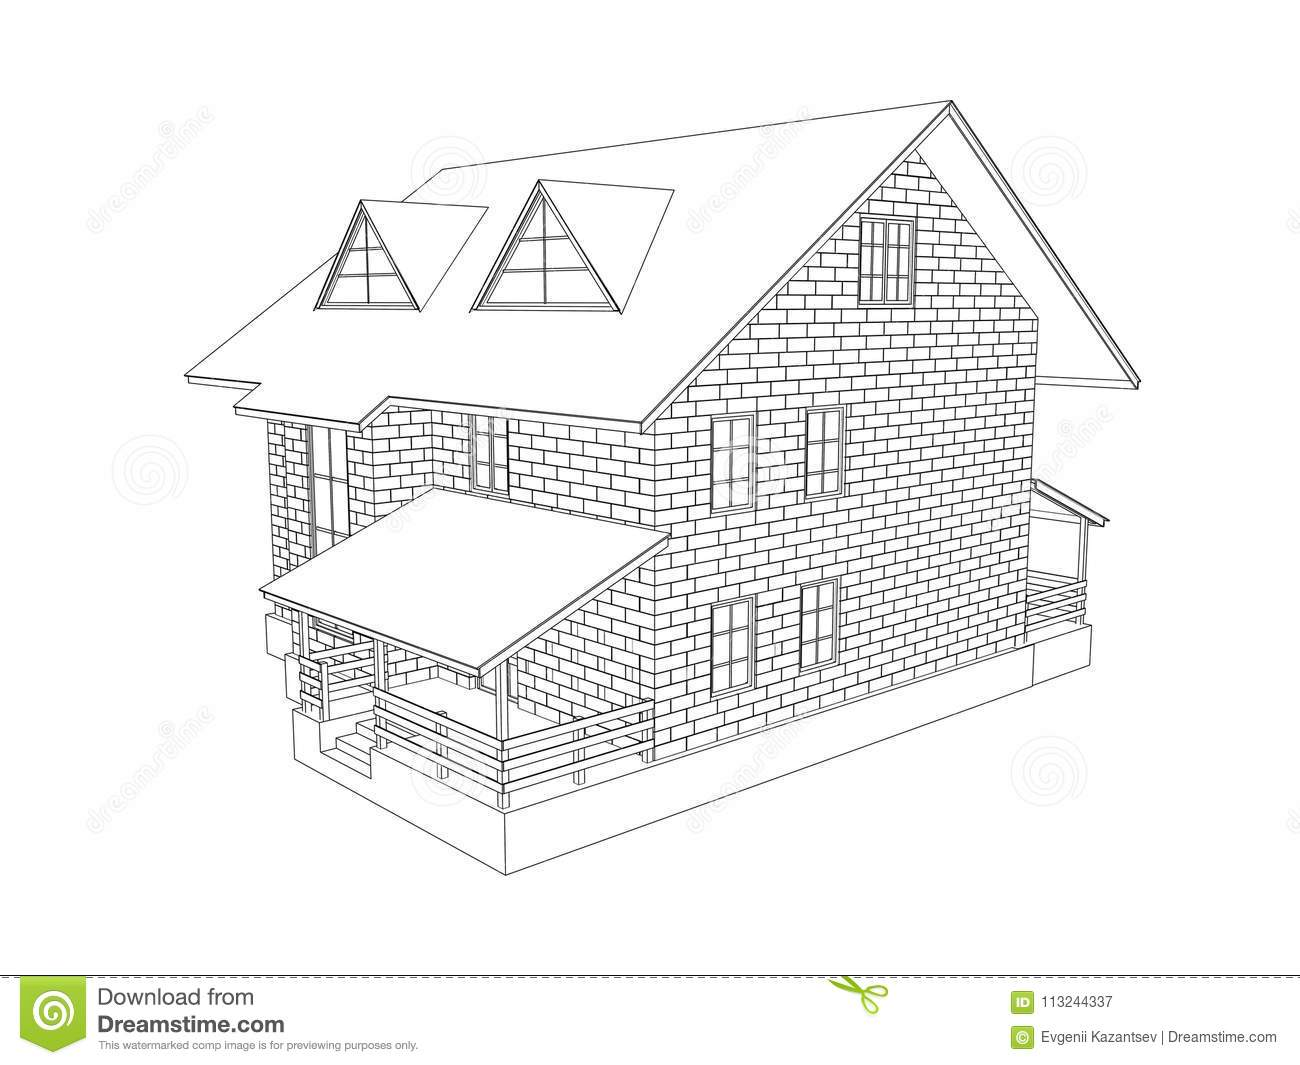 How To Draw A Two Story House Step By Step Ughs Architecture Revit